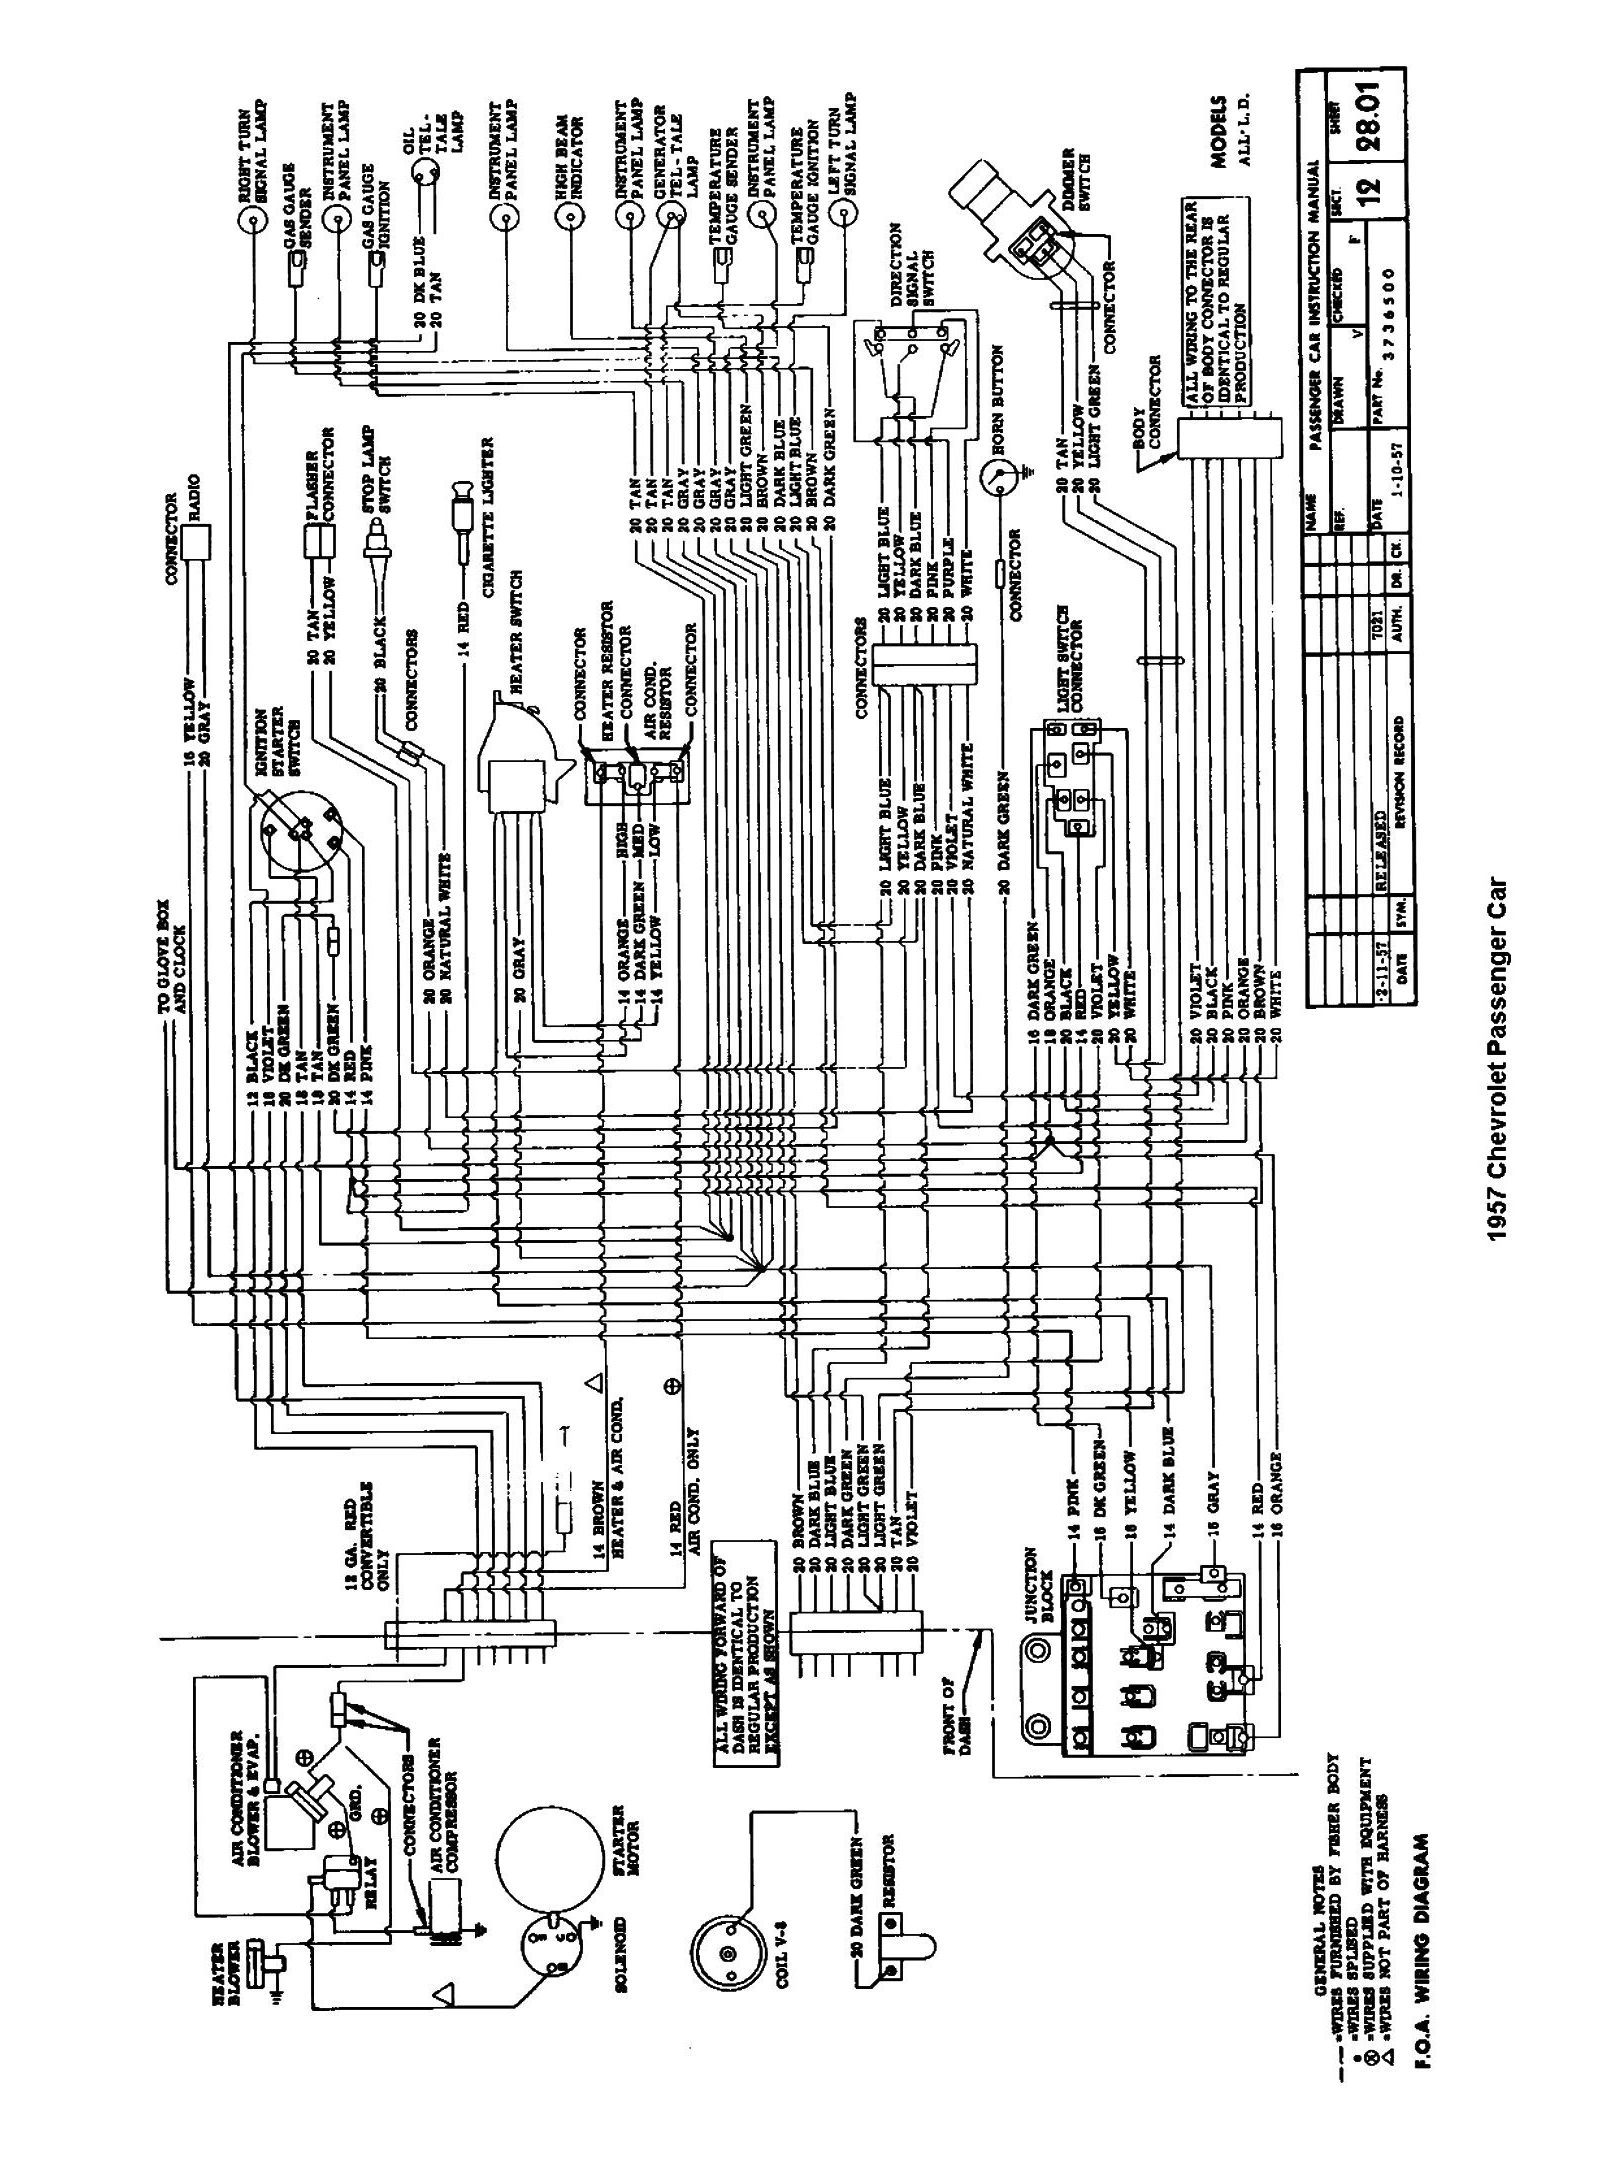 1957 Chevy Wiring Diagram Online 1956 Truck Diagrams 57 Schematic Blogs Horn